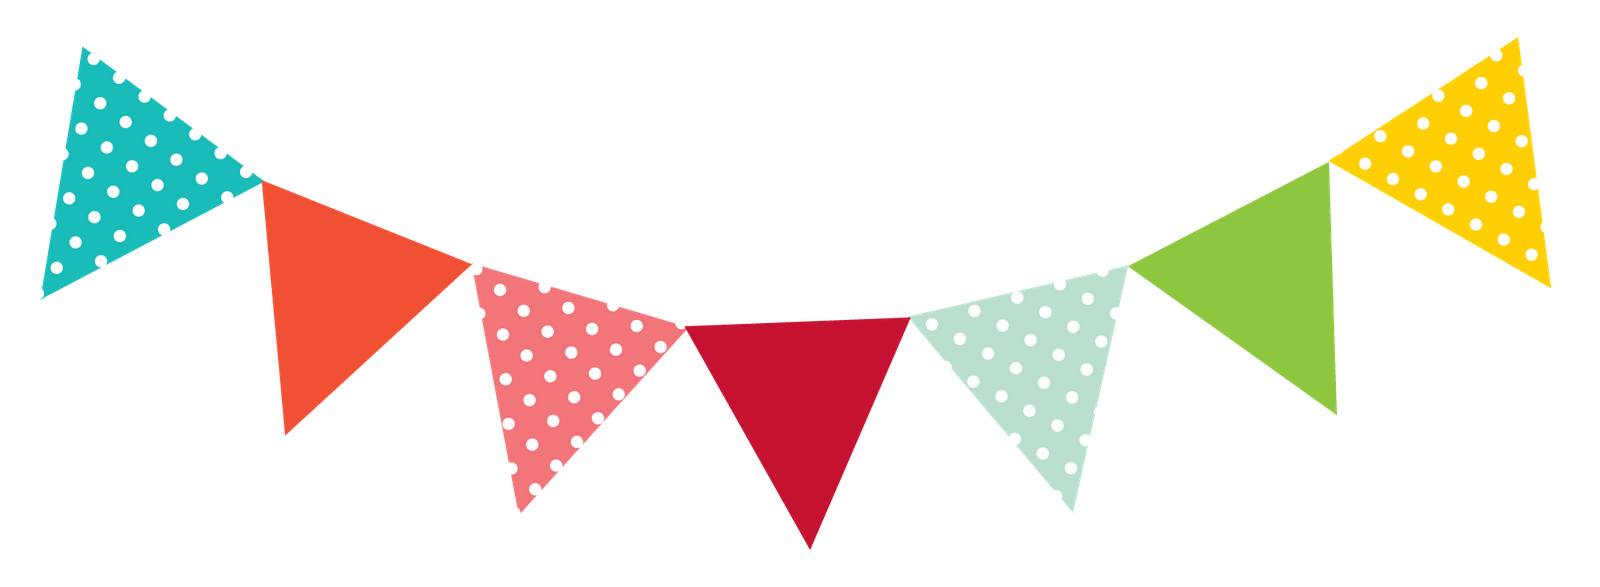 Red & gree flag pennants clipart png transparent background free Pin by Eyn Loryss on Emotions, Holidays | Banner clip art, Bunting ... free